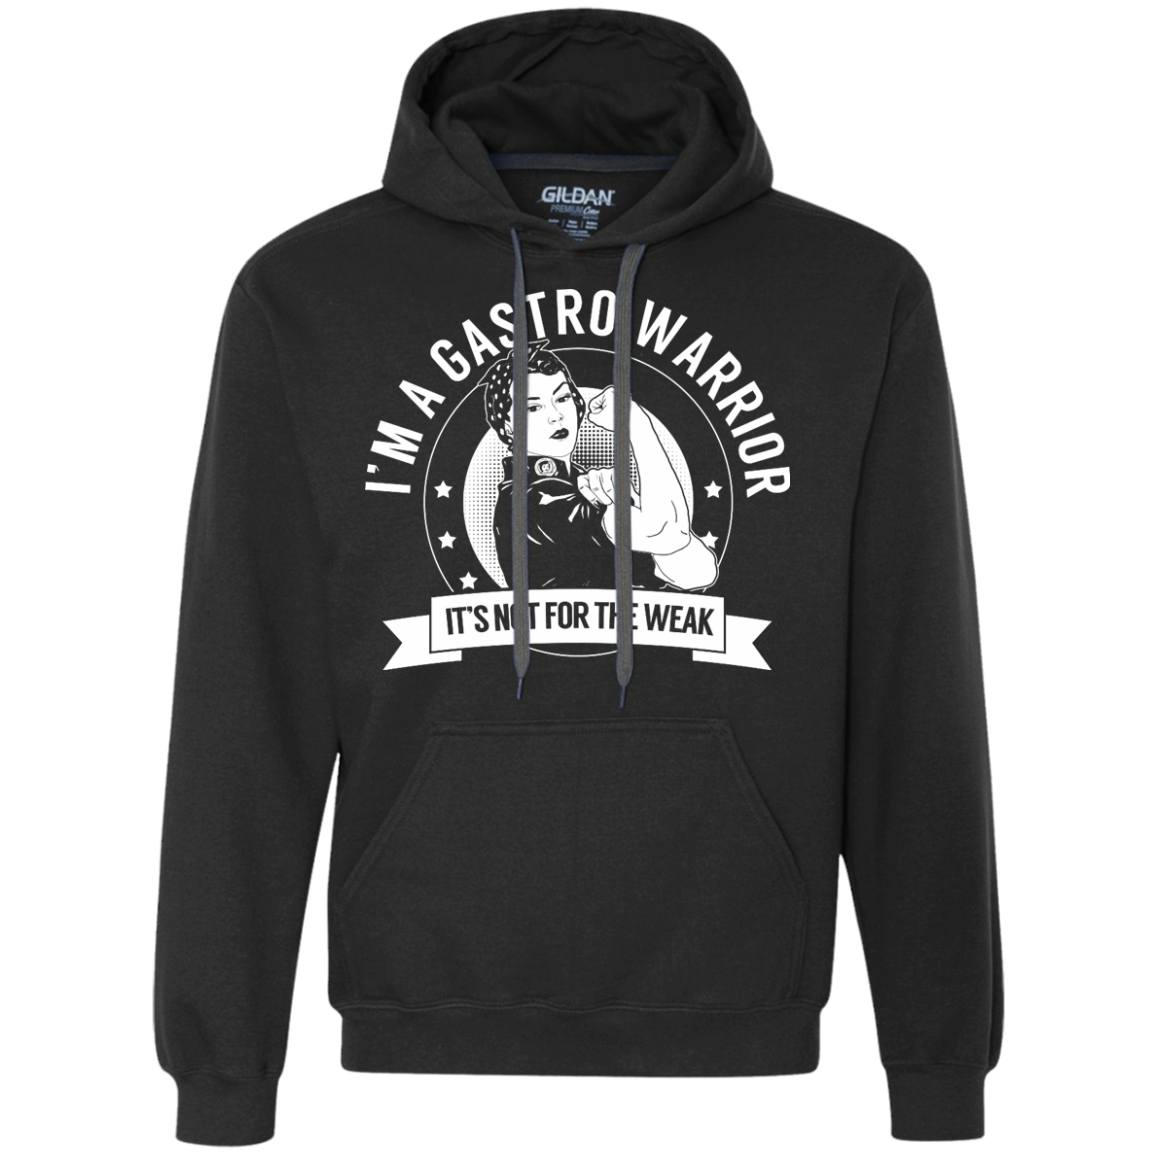 Gastroparesis – Gastro Warrior Not for the Weak Pullover Hoodie